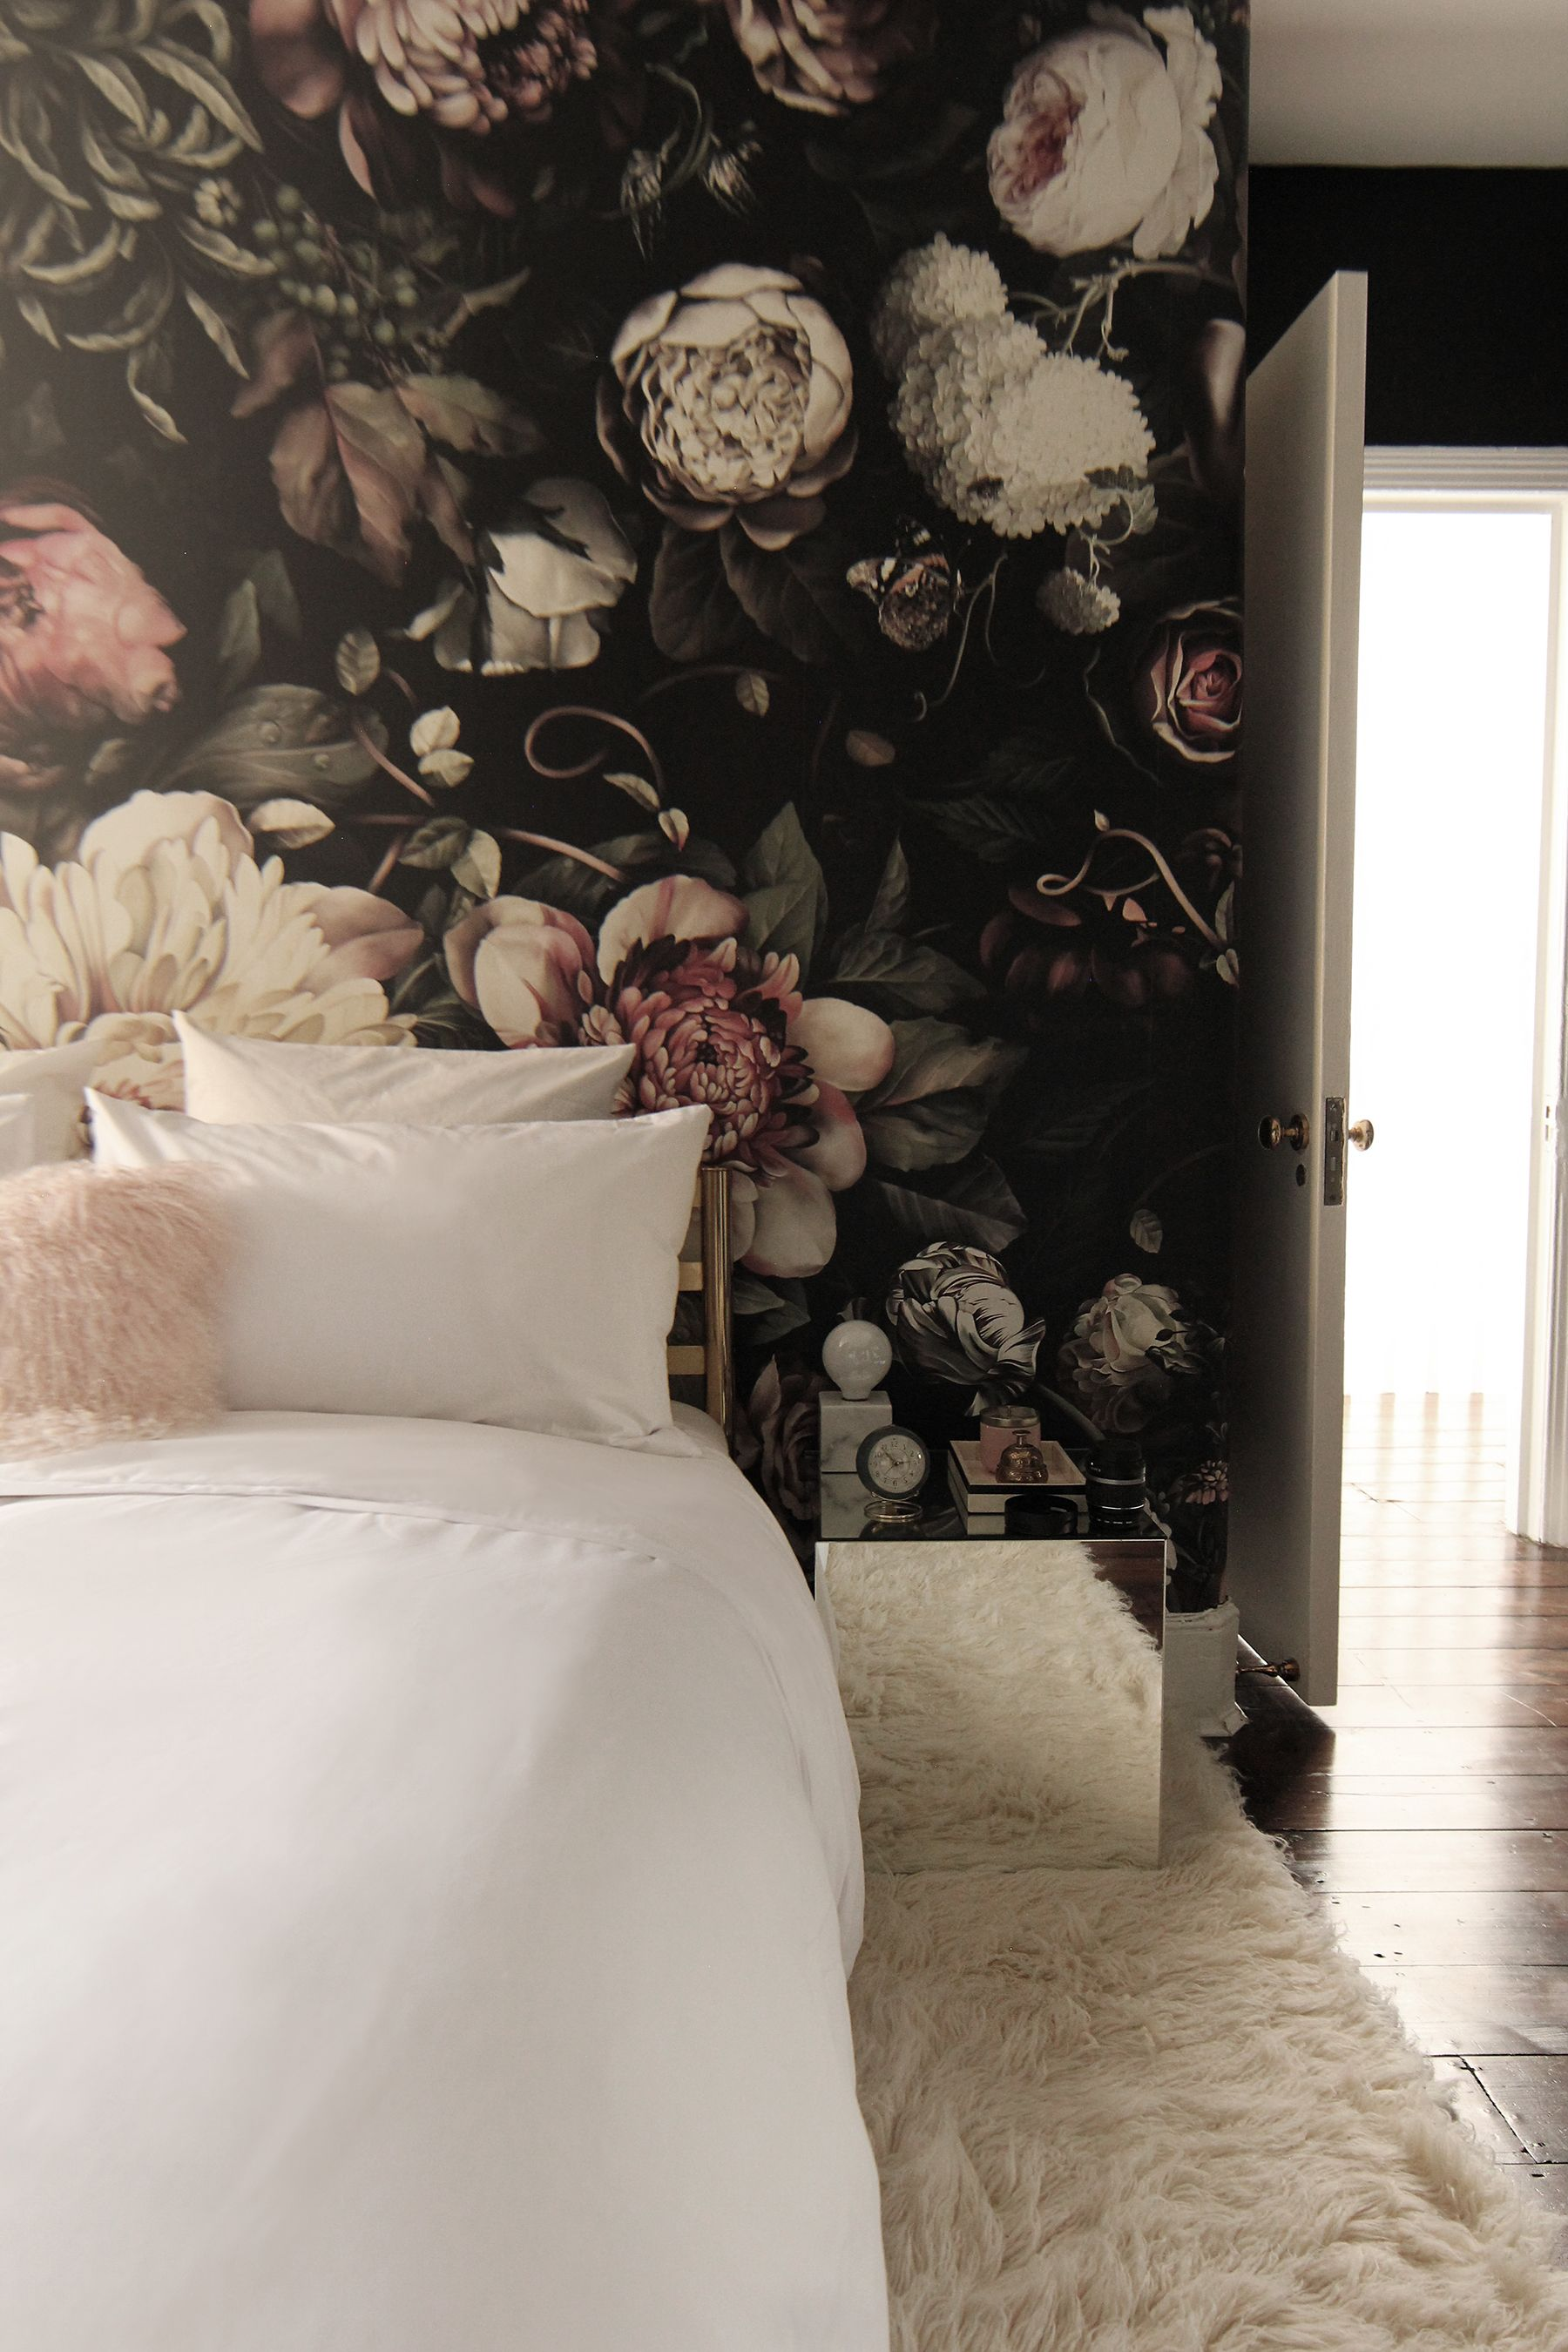 Best Before After A London Bedroom Gets A Dark Dramatic Floral Makeover Bedroom Makeover London 400 x 300